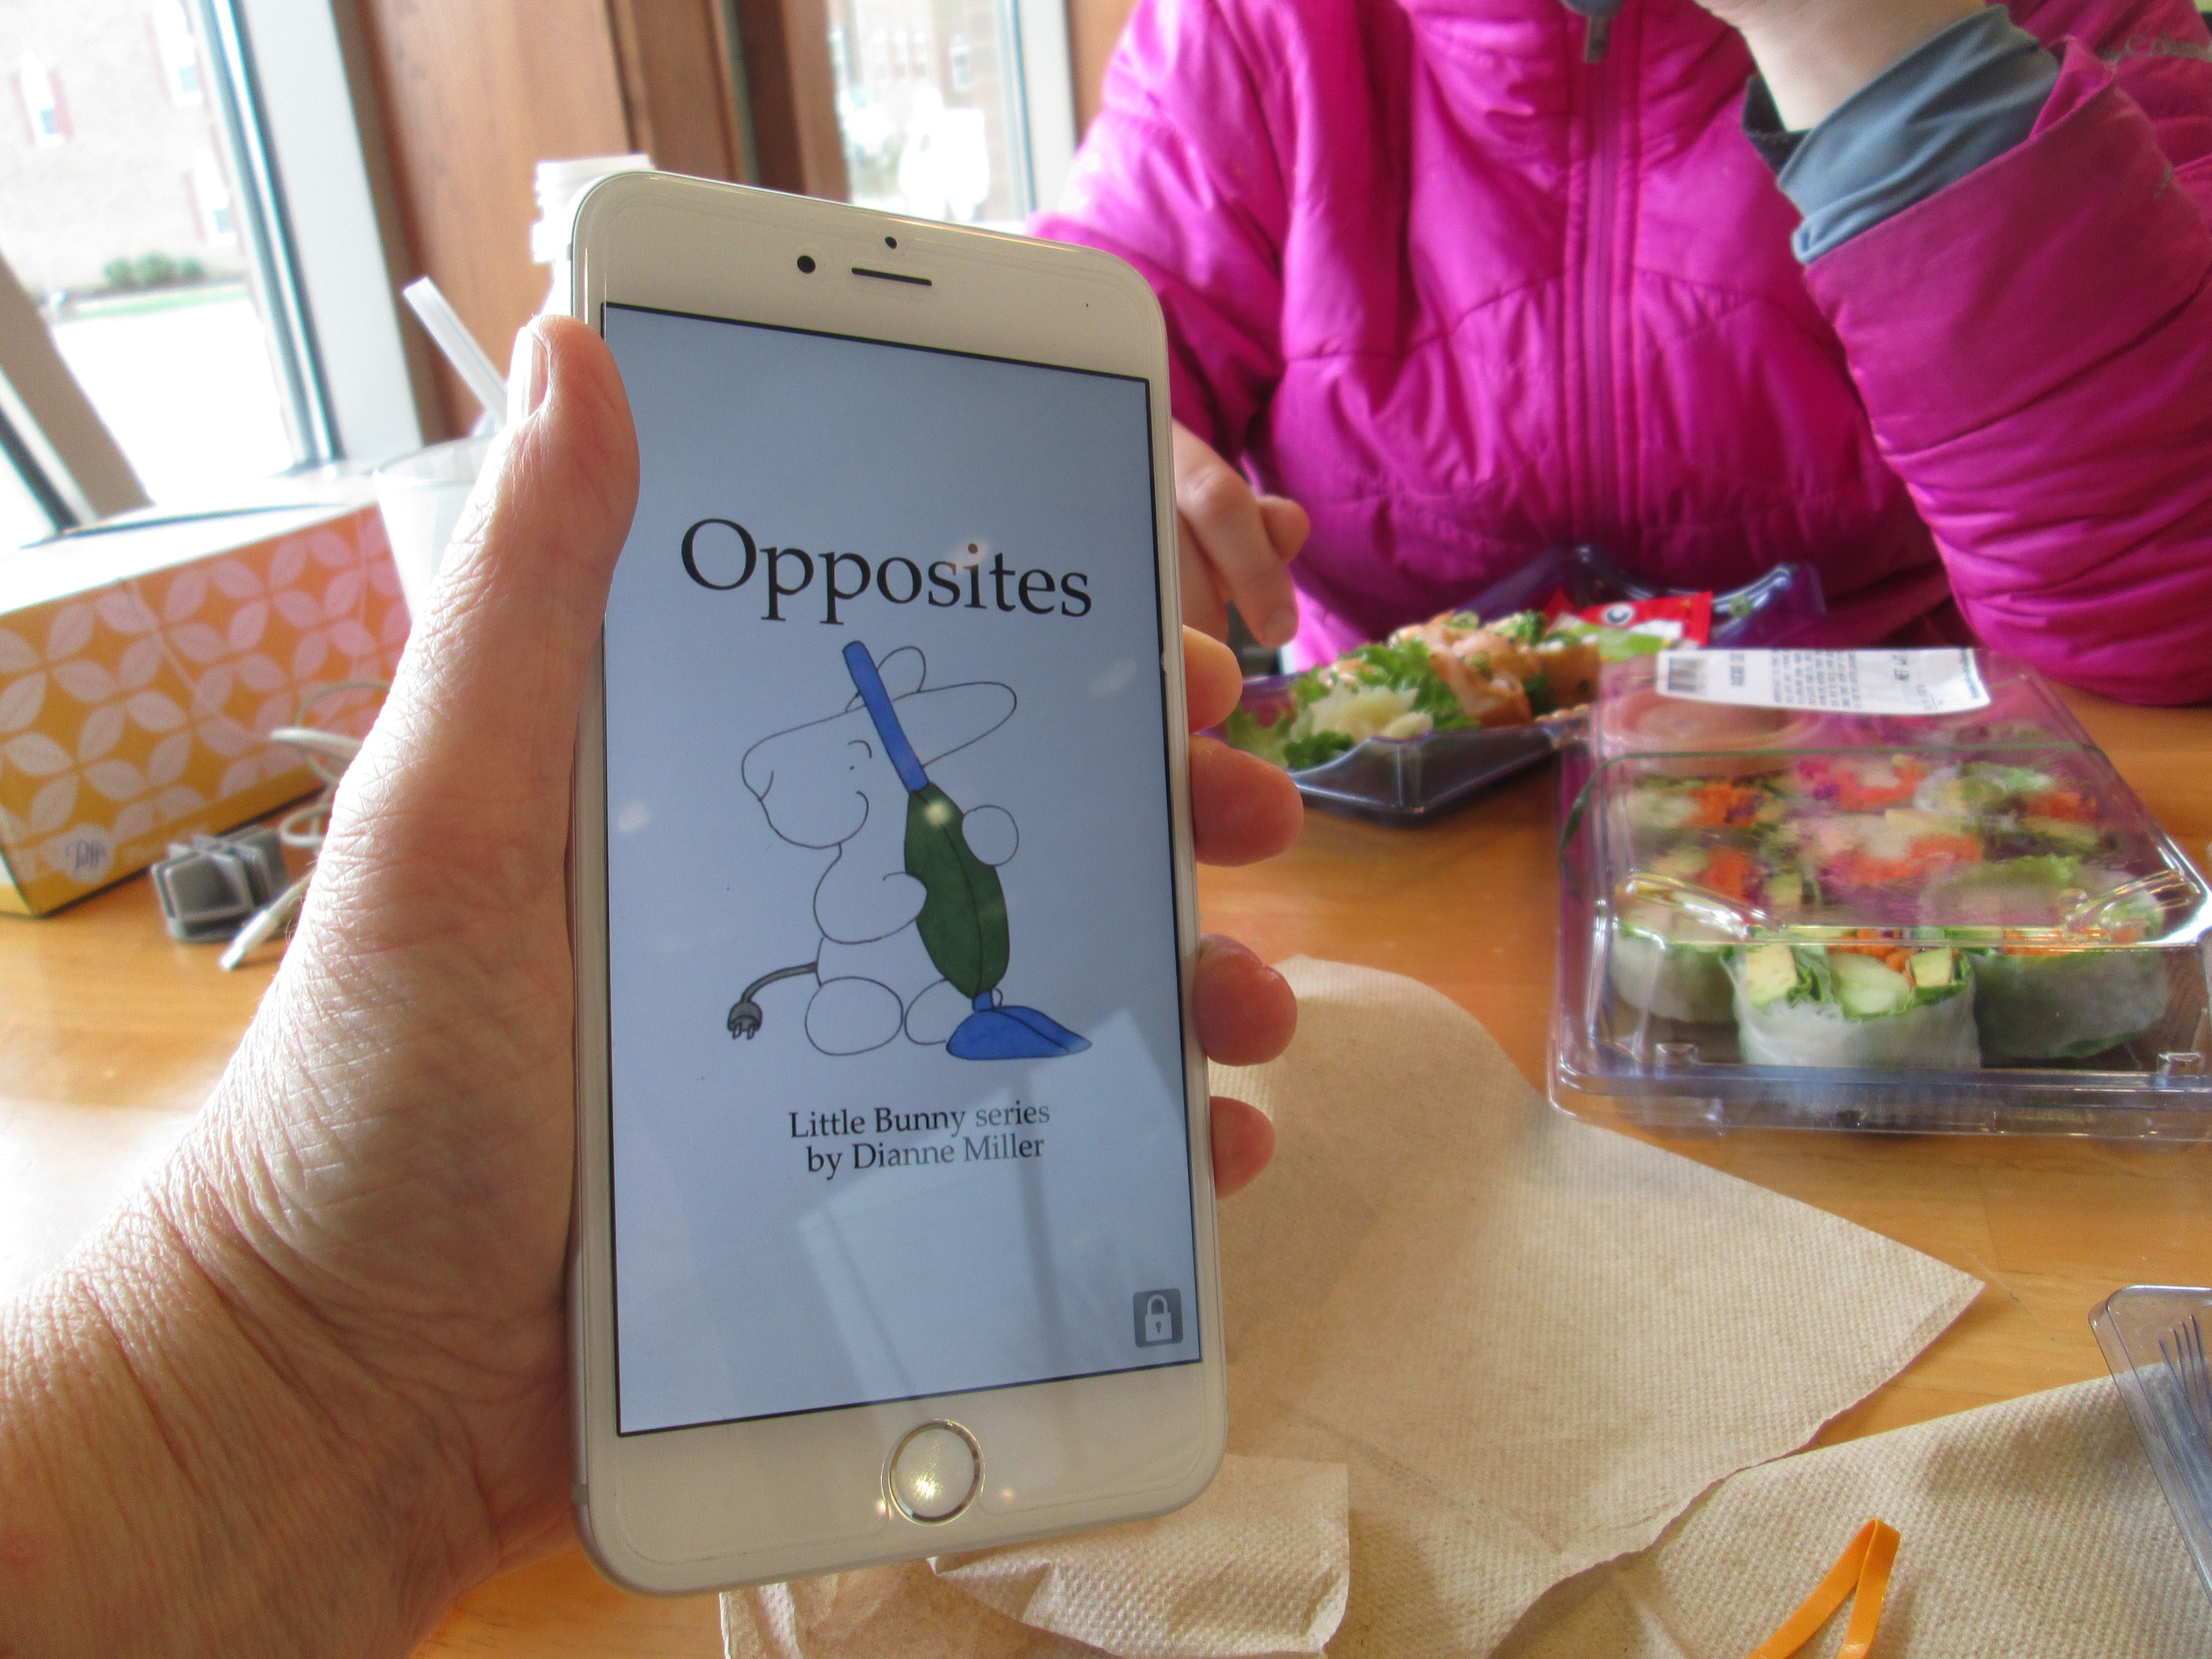 Read Little Bunny Ebooks Wherever You Are With Your Little